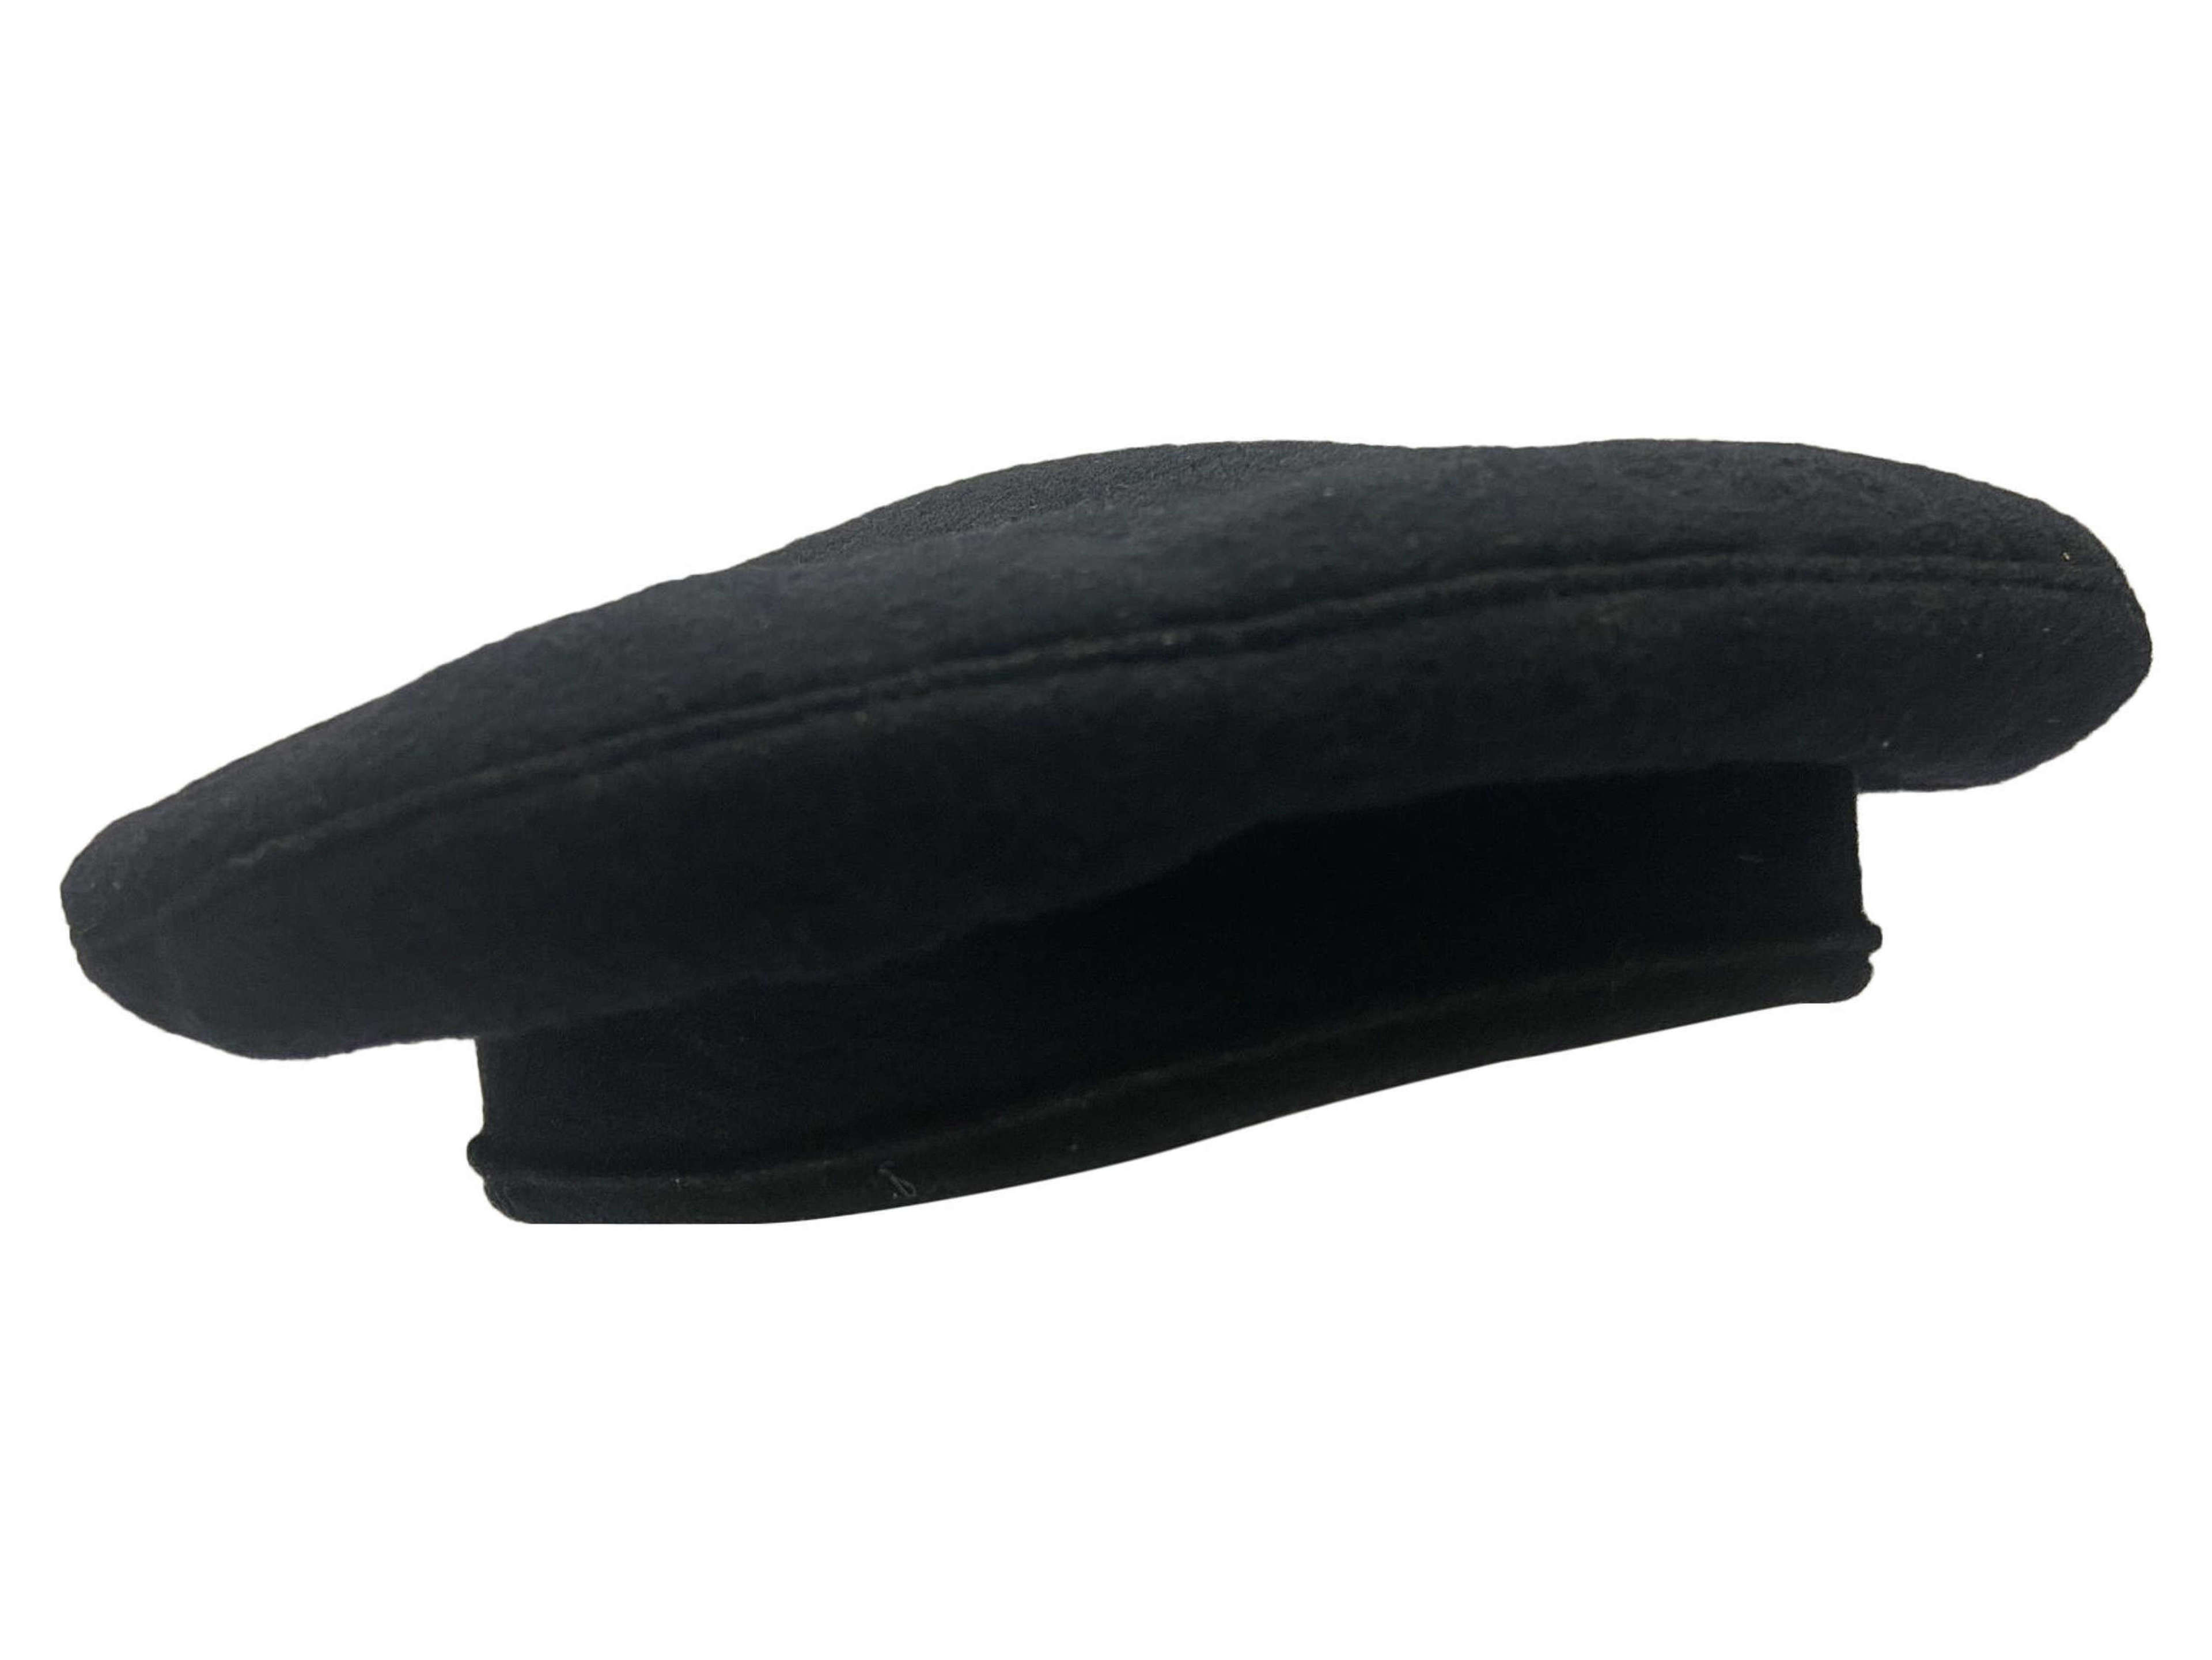 Original WW2 WRNS Ratings Cap